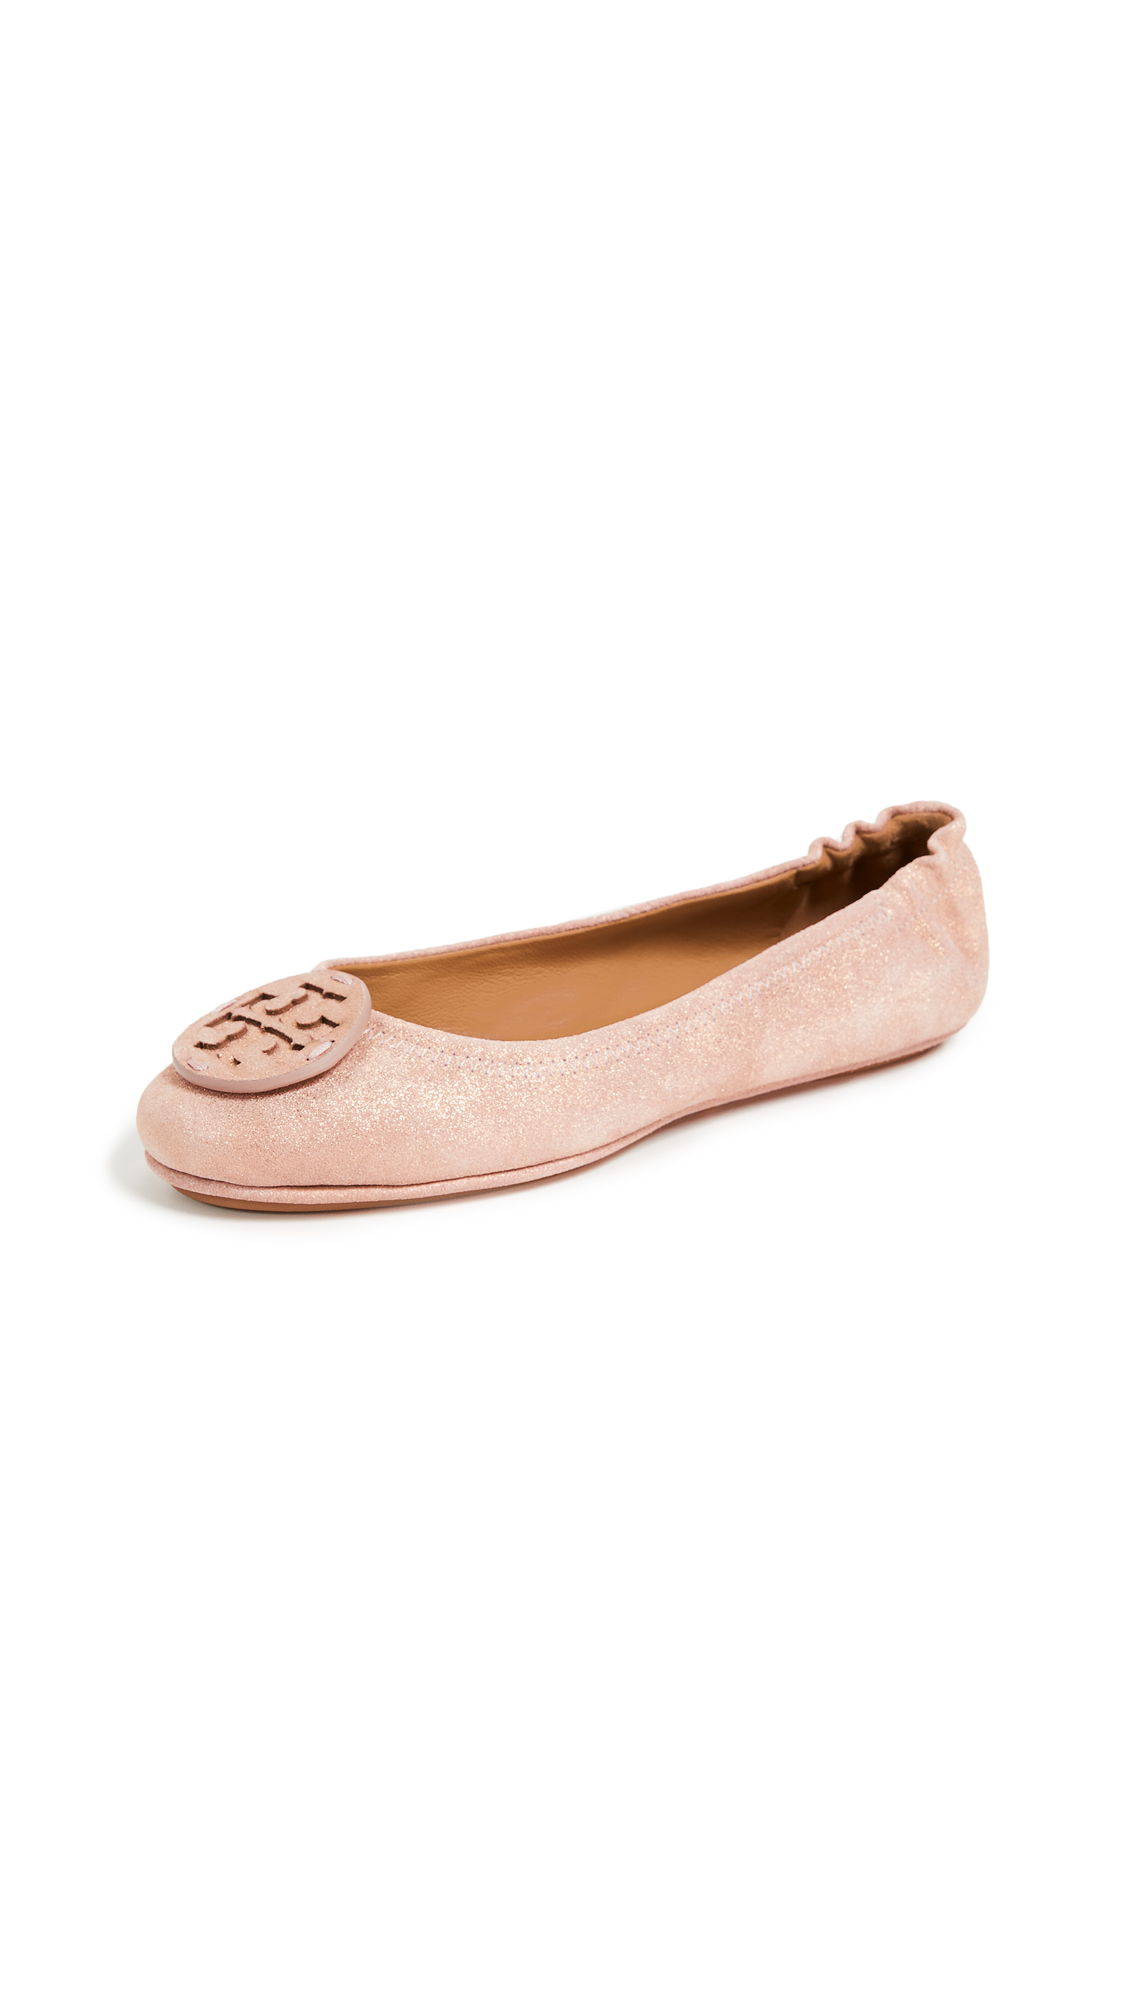 Tory Burch Minnie Travel Logo Ballet Flats - Metallic Sea Shell Pink